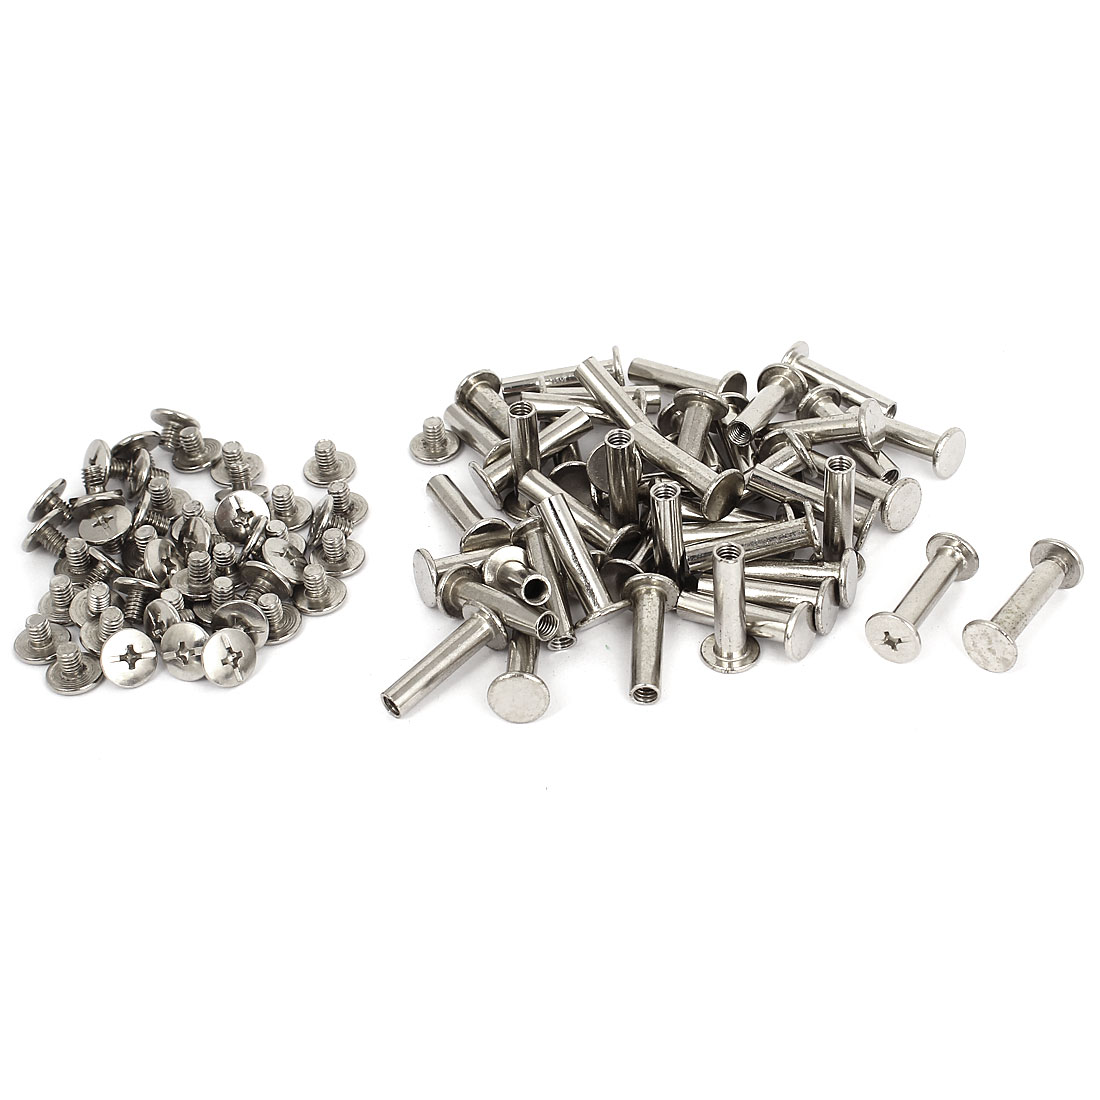 5mmx20mm Nickel Plated Binding Chicago Screw Post for Photo Albums 50pcs